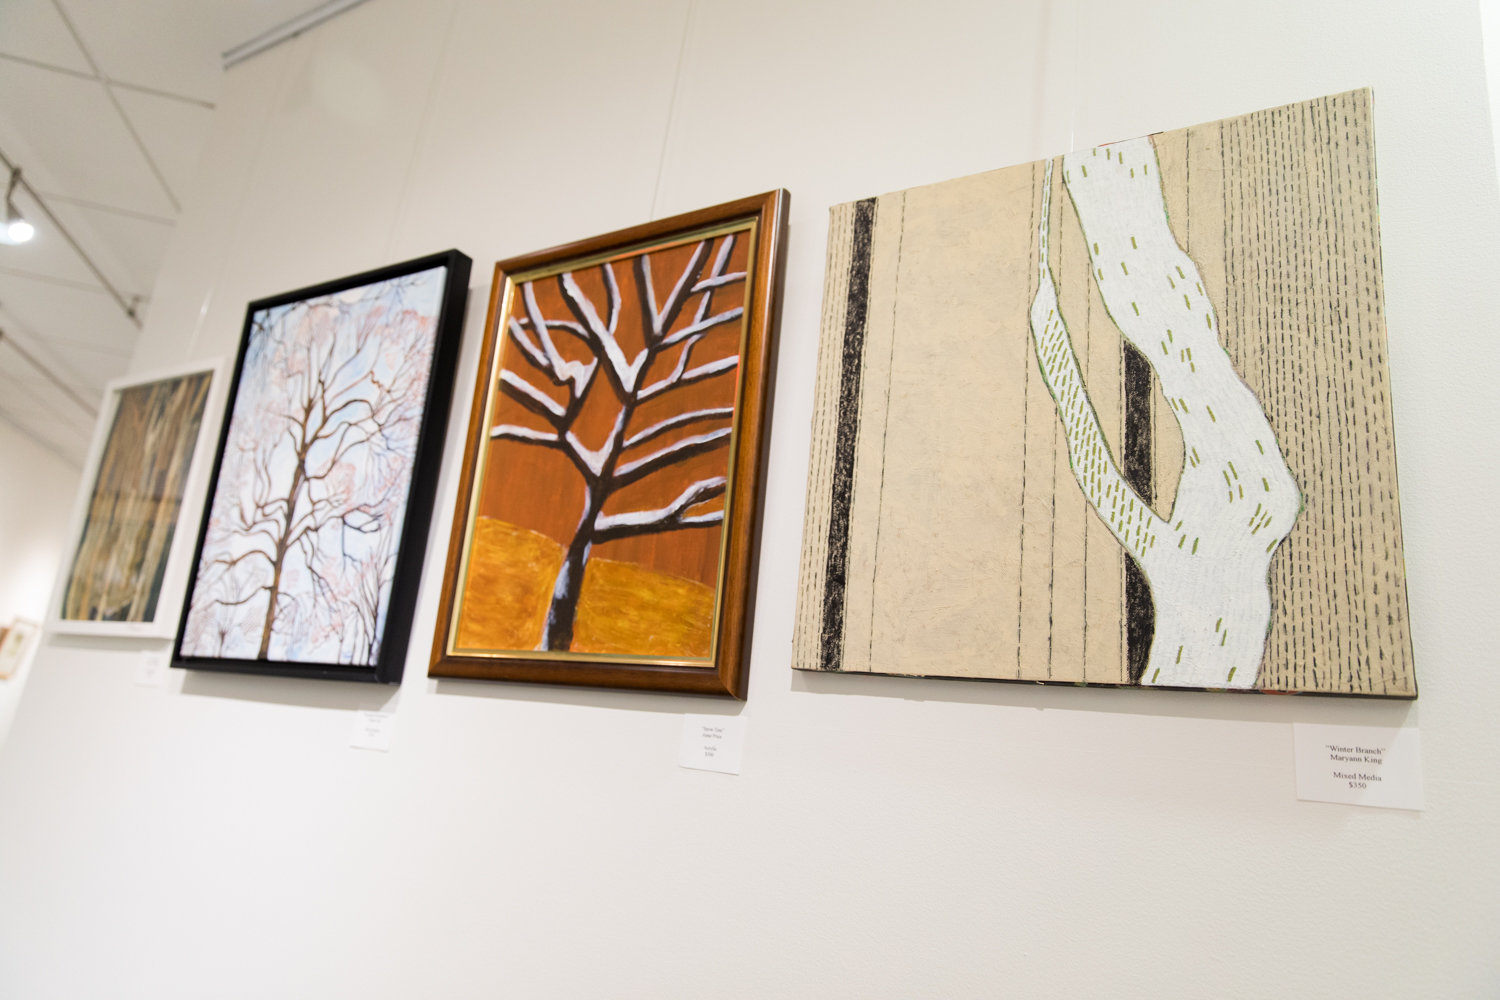 The Riverdale Y's Gallery 18 space went full arboreal with its latest exhibition 'Tree Time,' which is on display through Nov. 3.